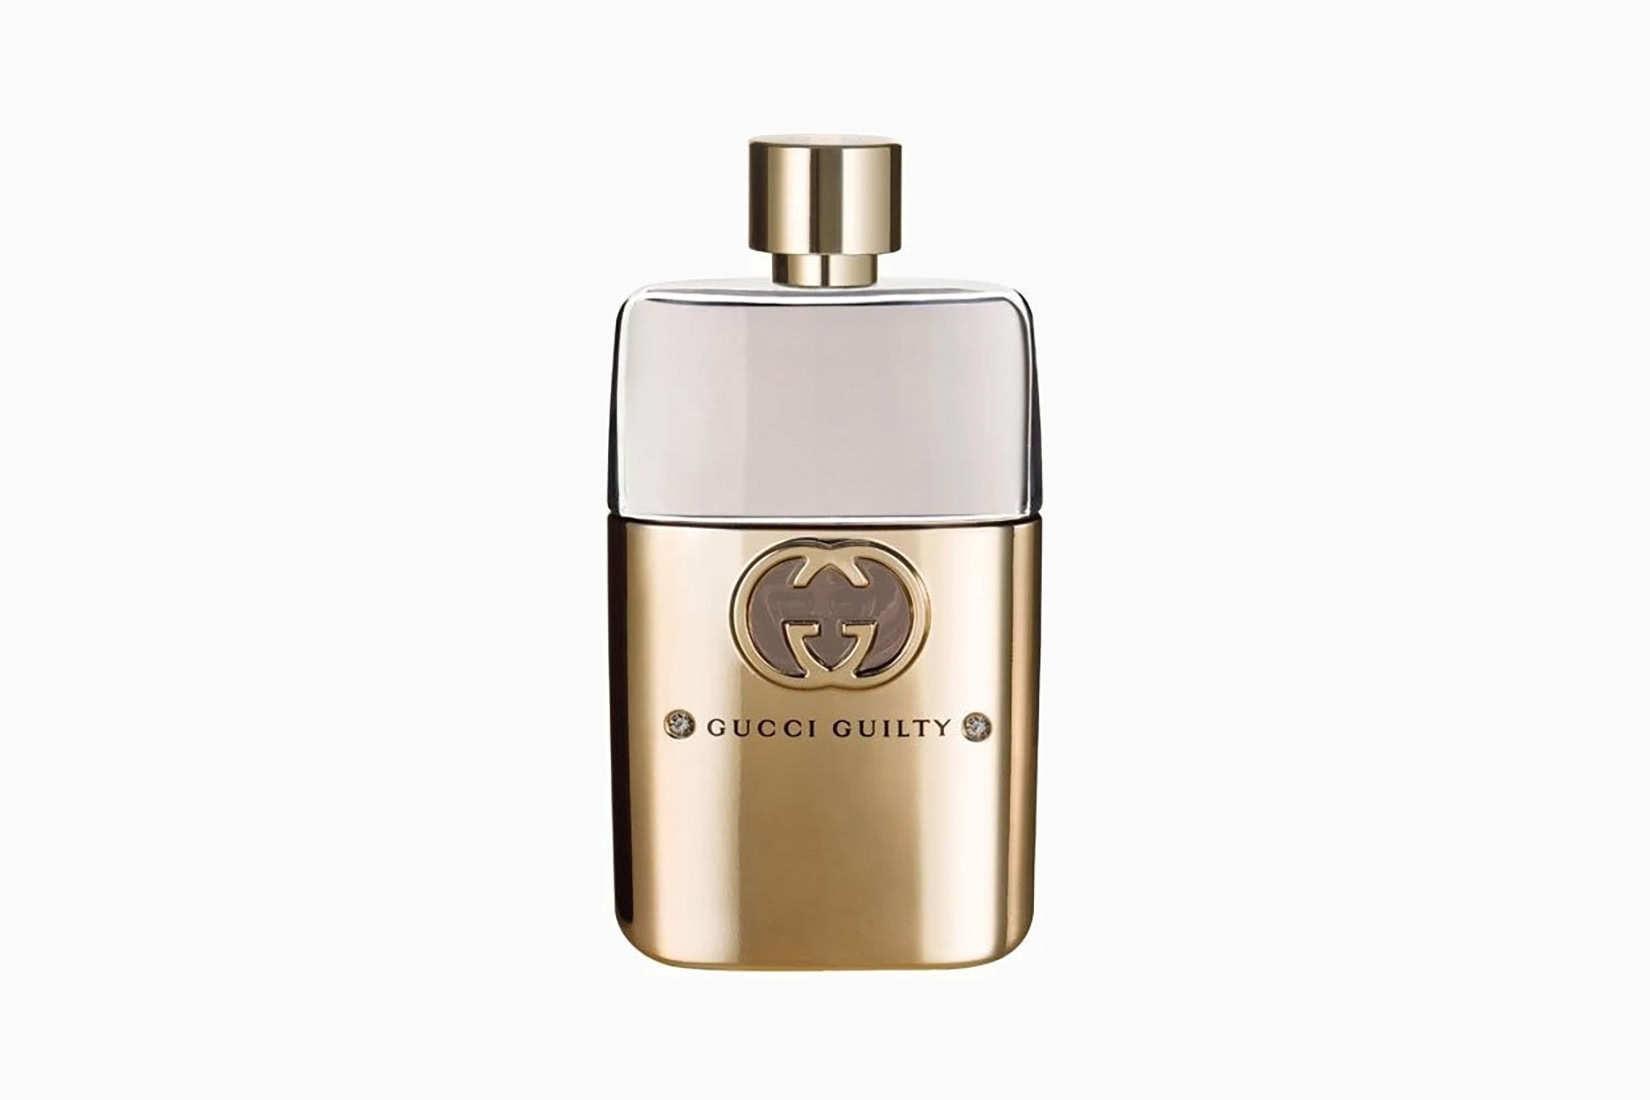 Best Smelling Luxury Colognes For Men